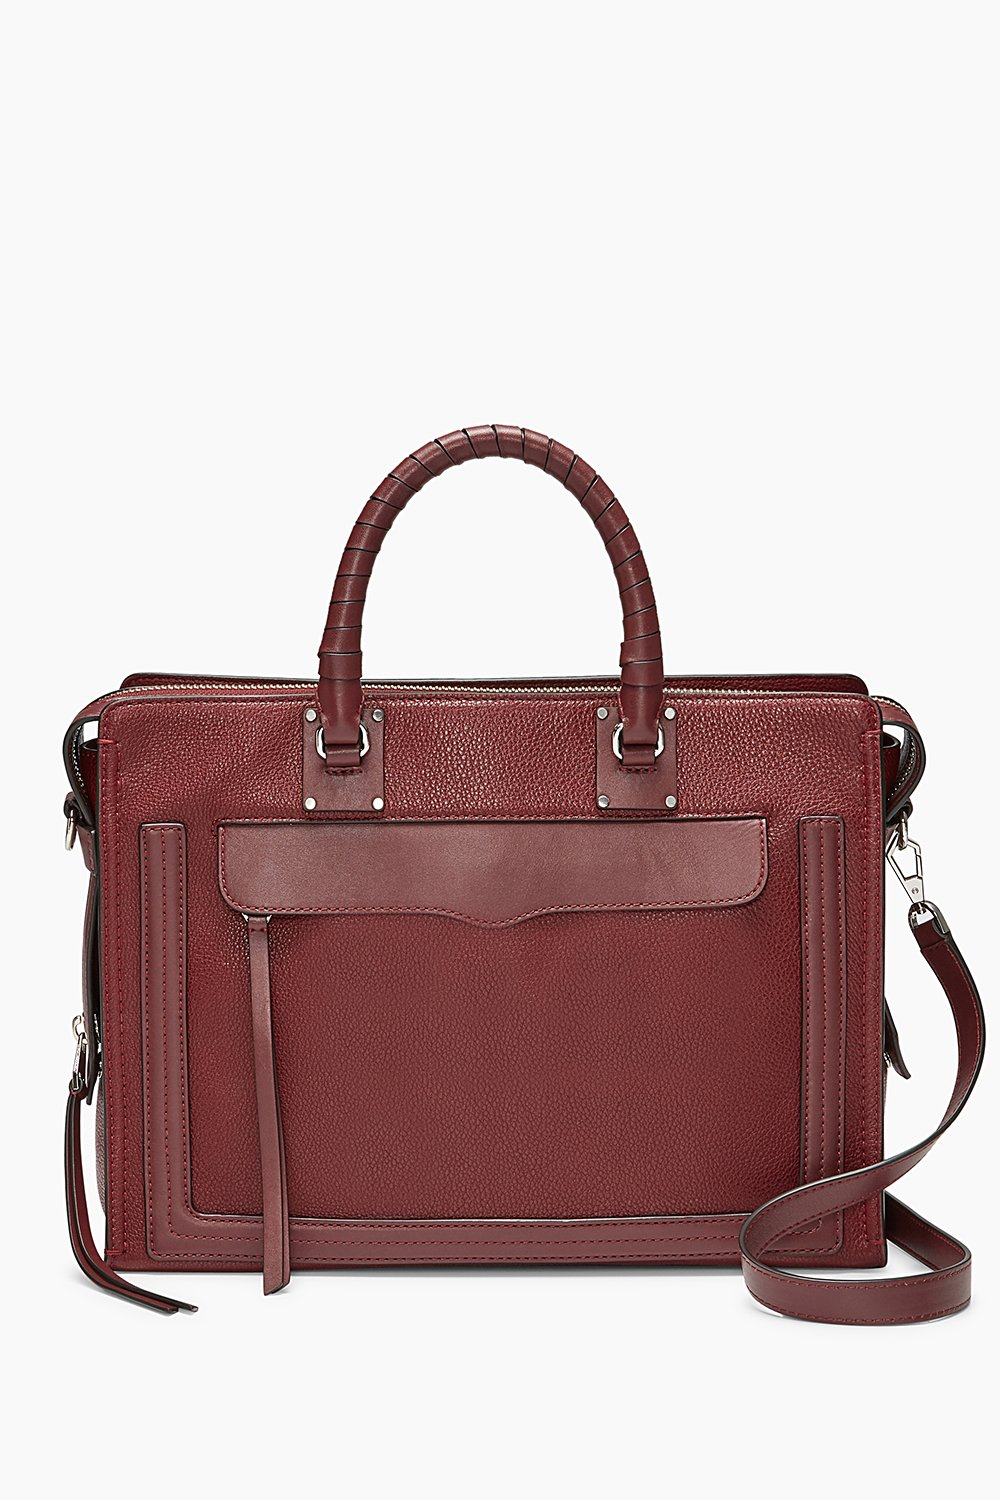 RS_0100_XF18EBES90_BREE_LG_TOP_ZIP_SATCHEL_630_BORDEAUX_A_jpg_x1600.progressive.jpg